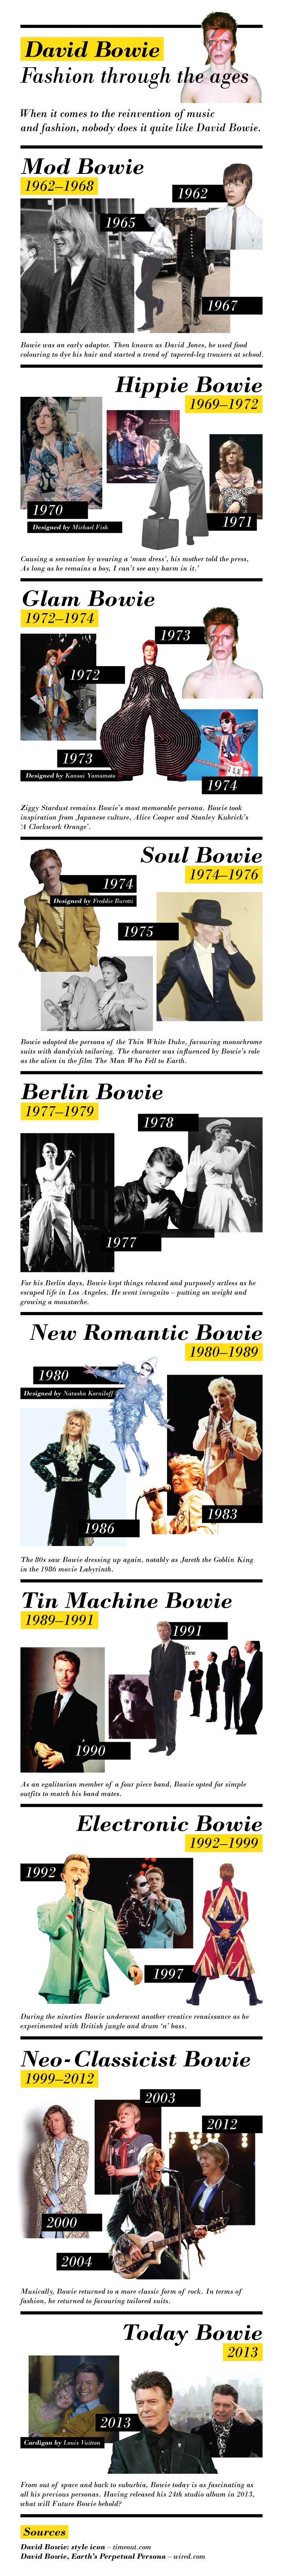 David Bowie Personas-Infographic